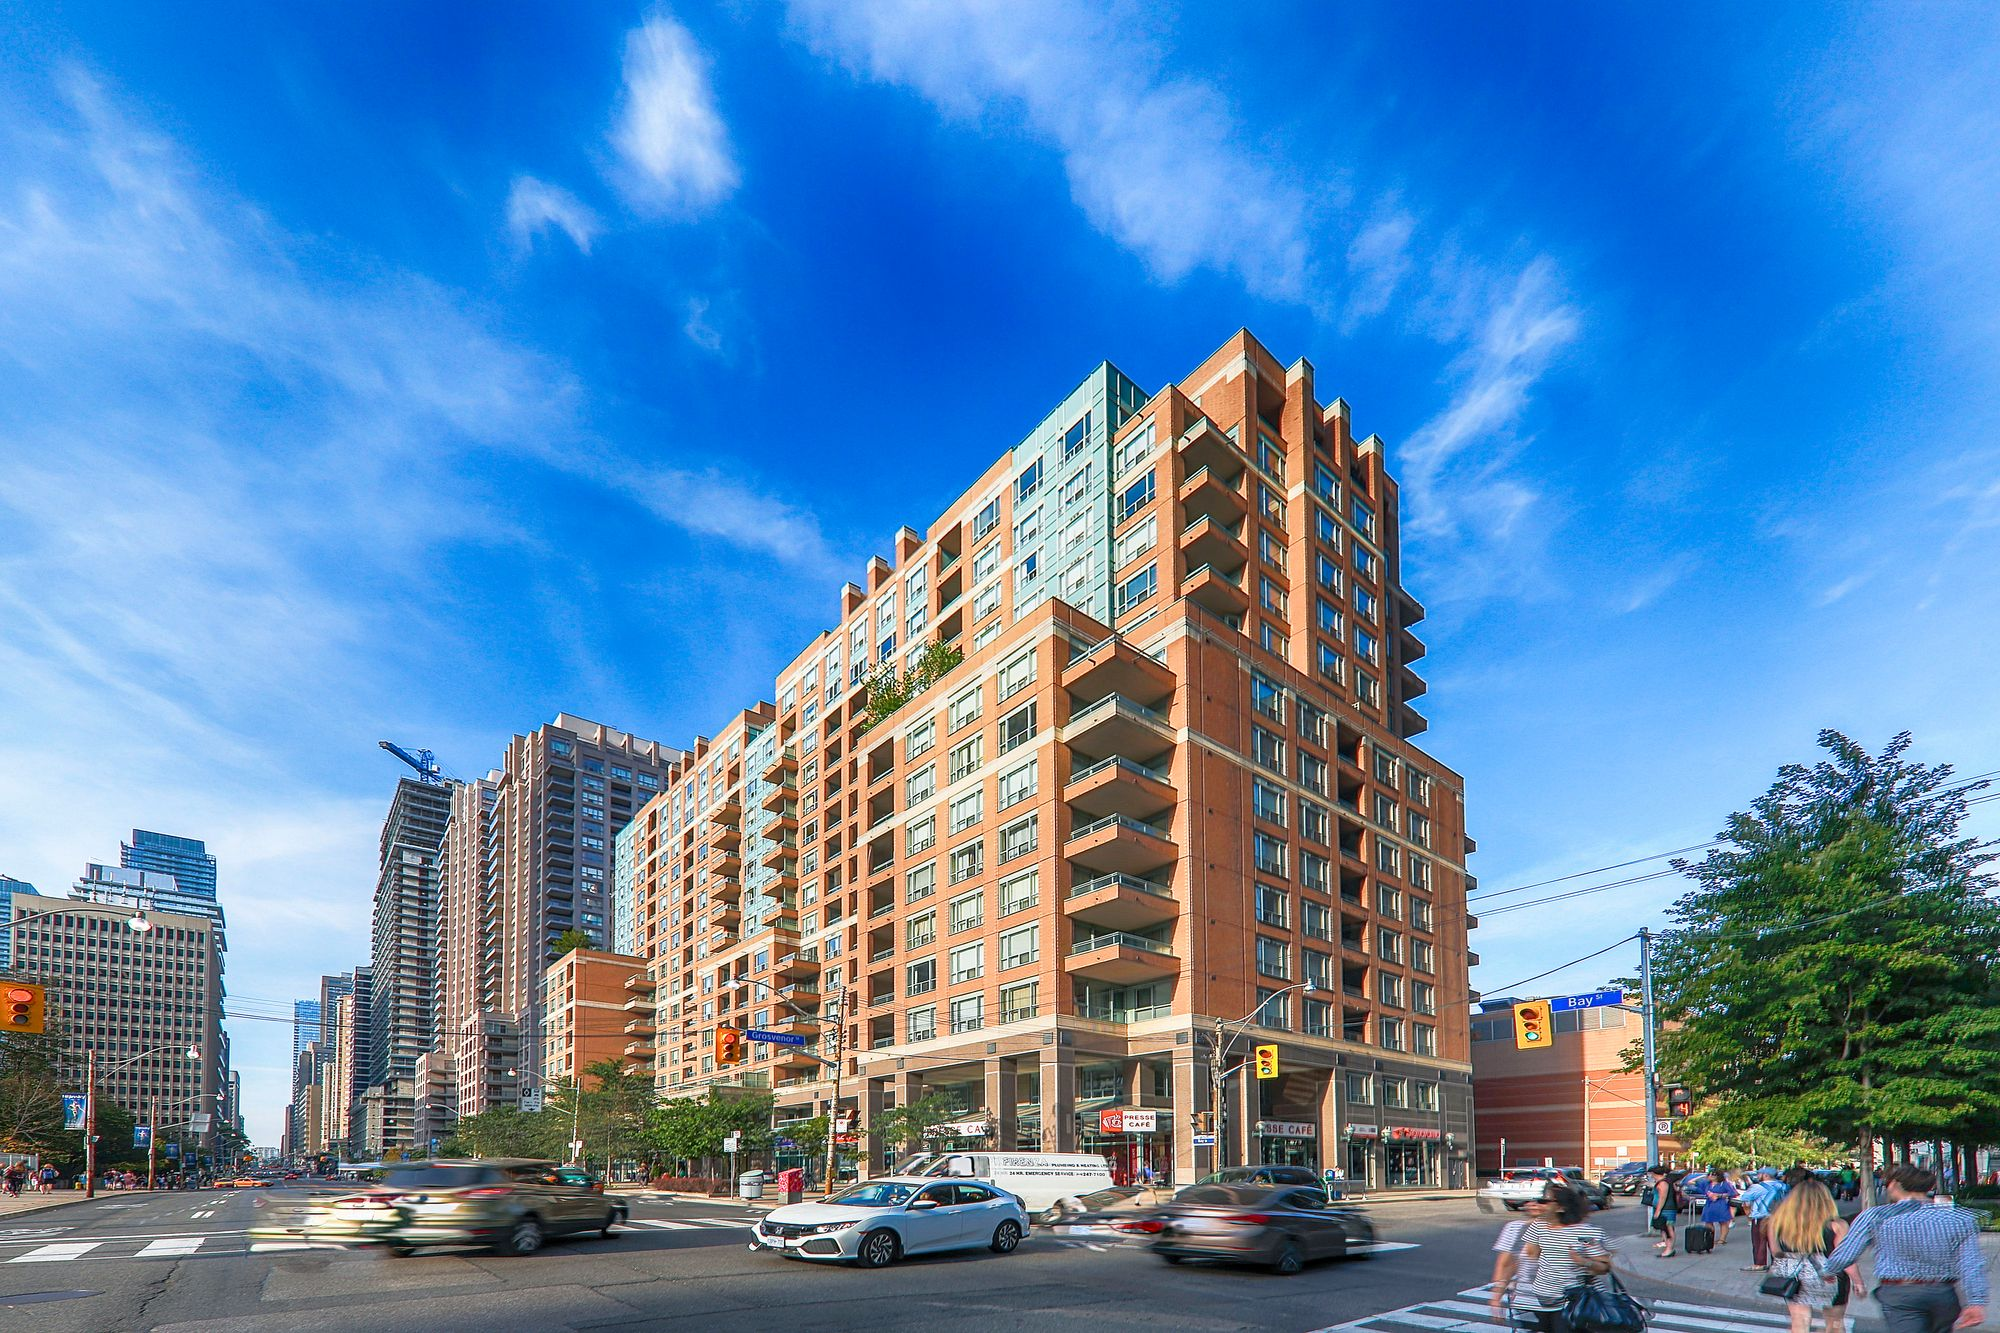 Opera Place II at 889 Bay St. This condo is located in  Downtown, Toronto - image #2 of 5 by Strata.ca